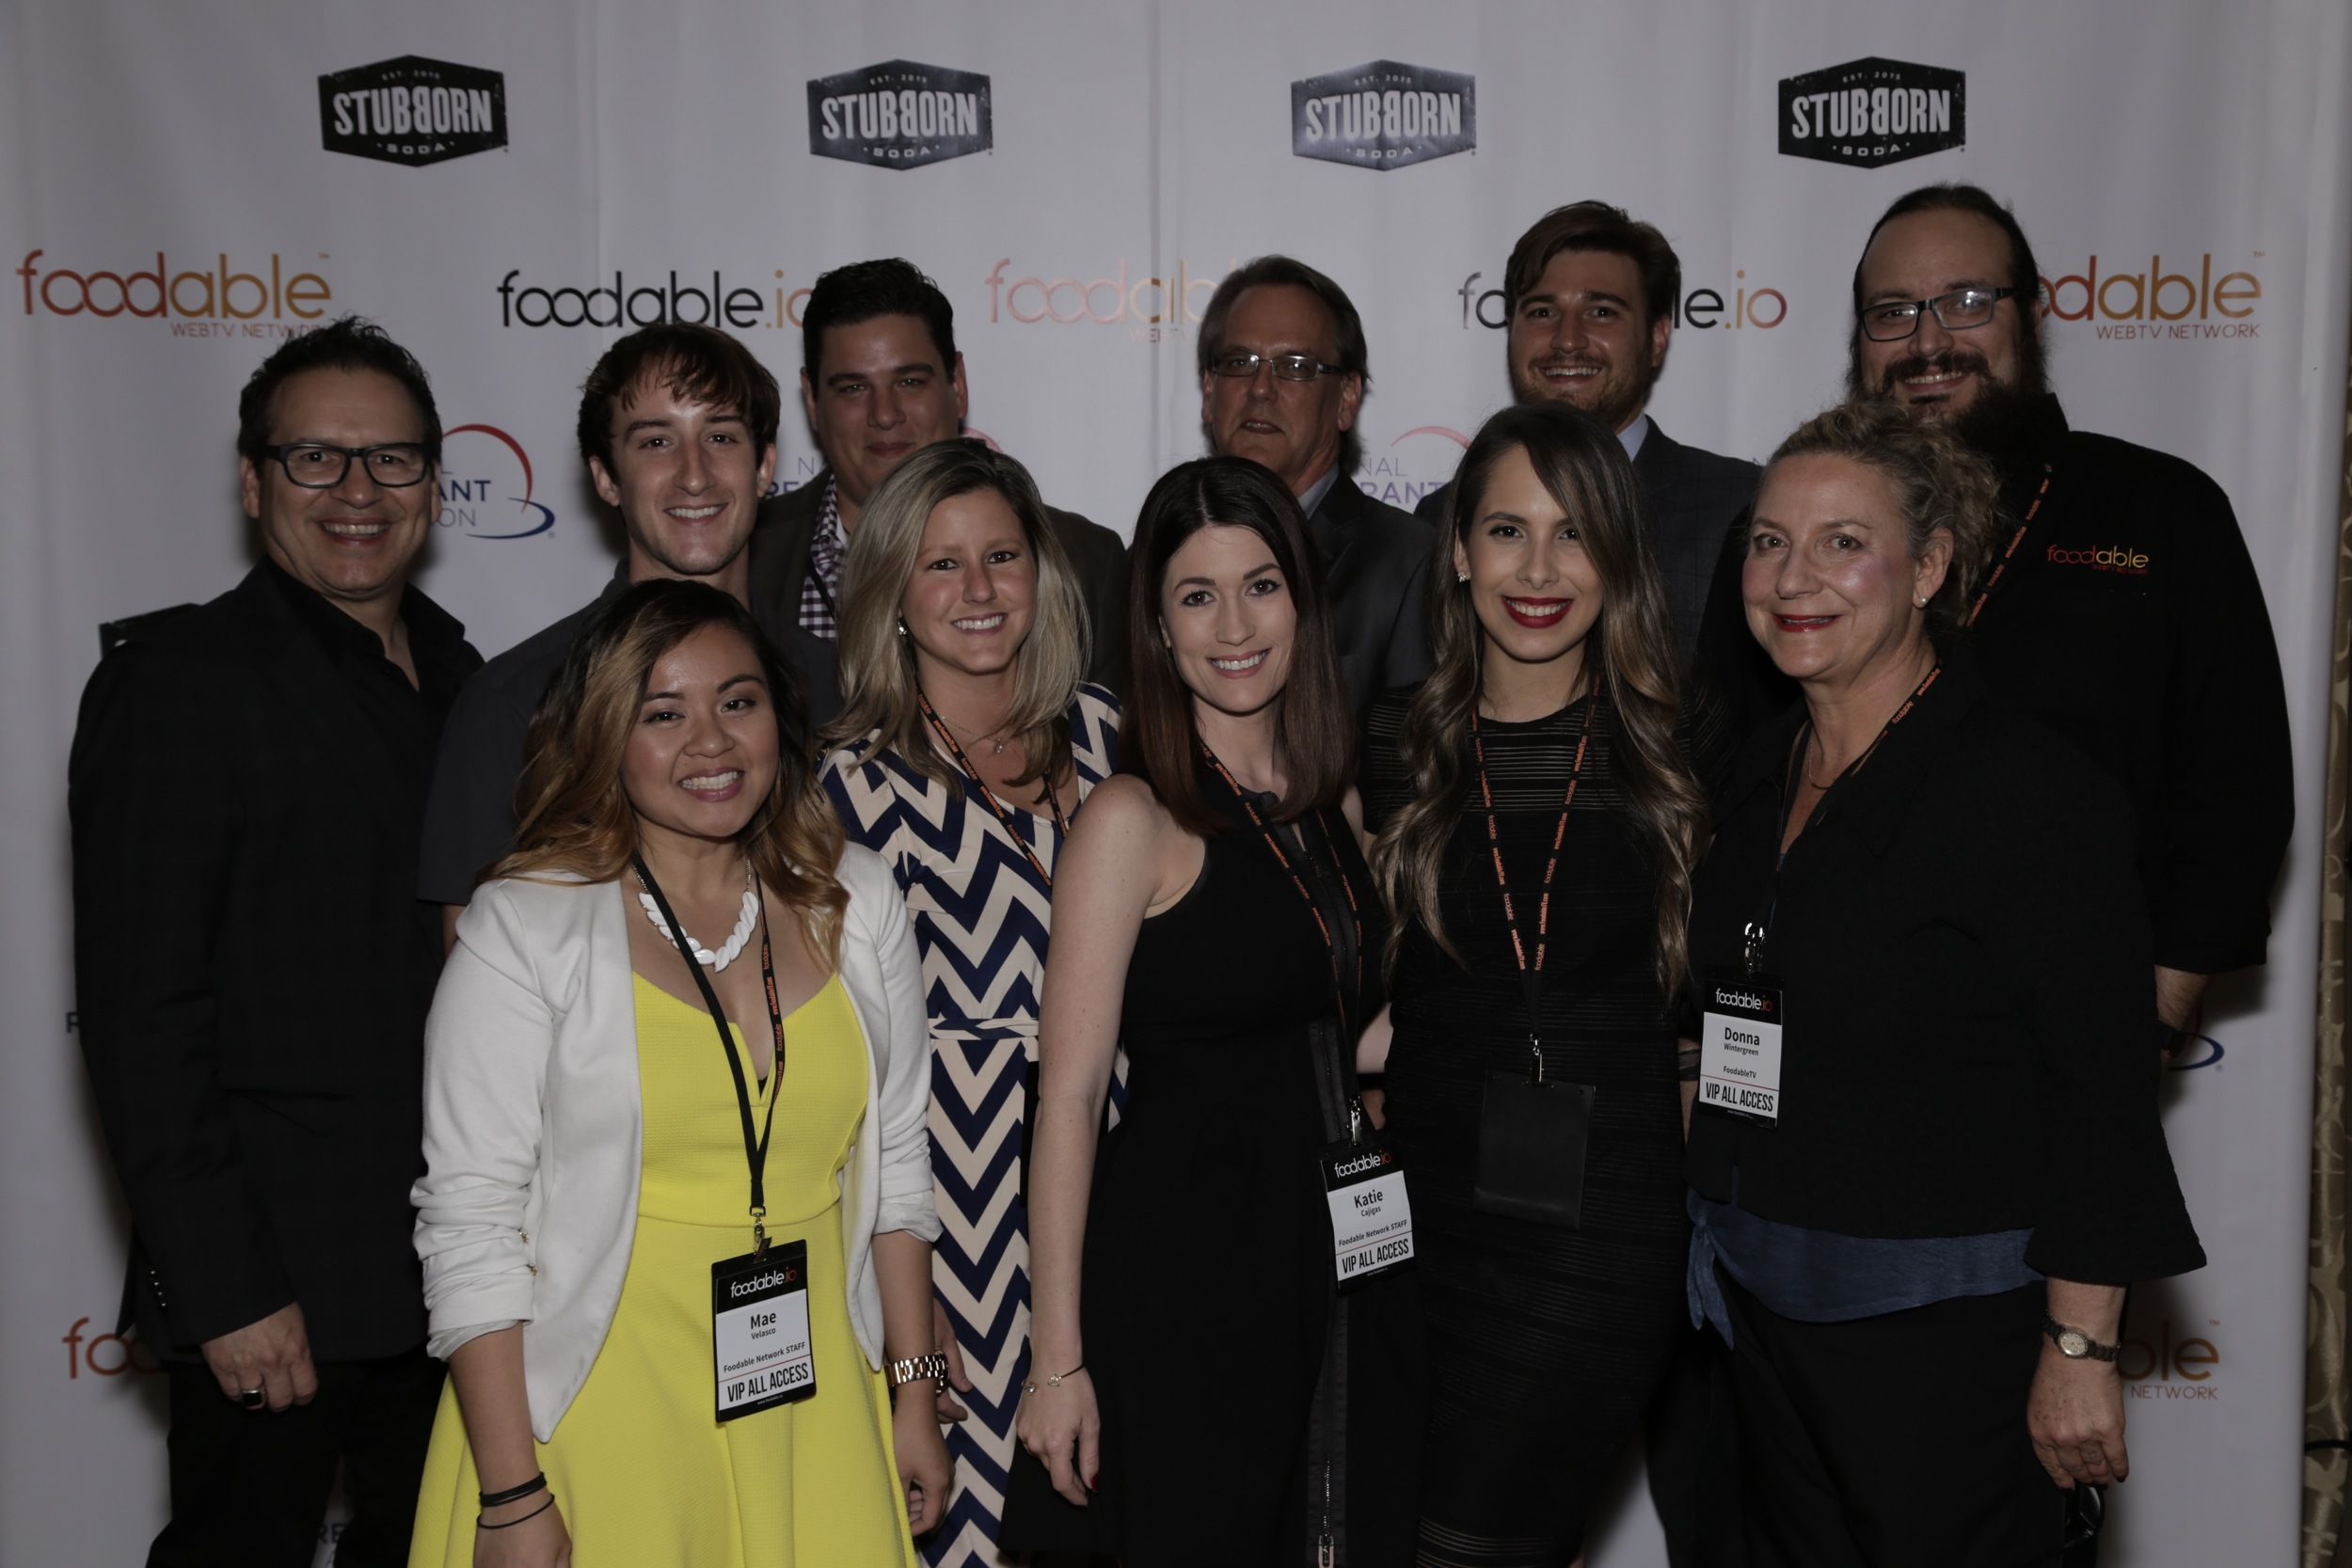 Some of the Foodable Network team